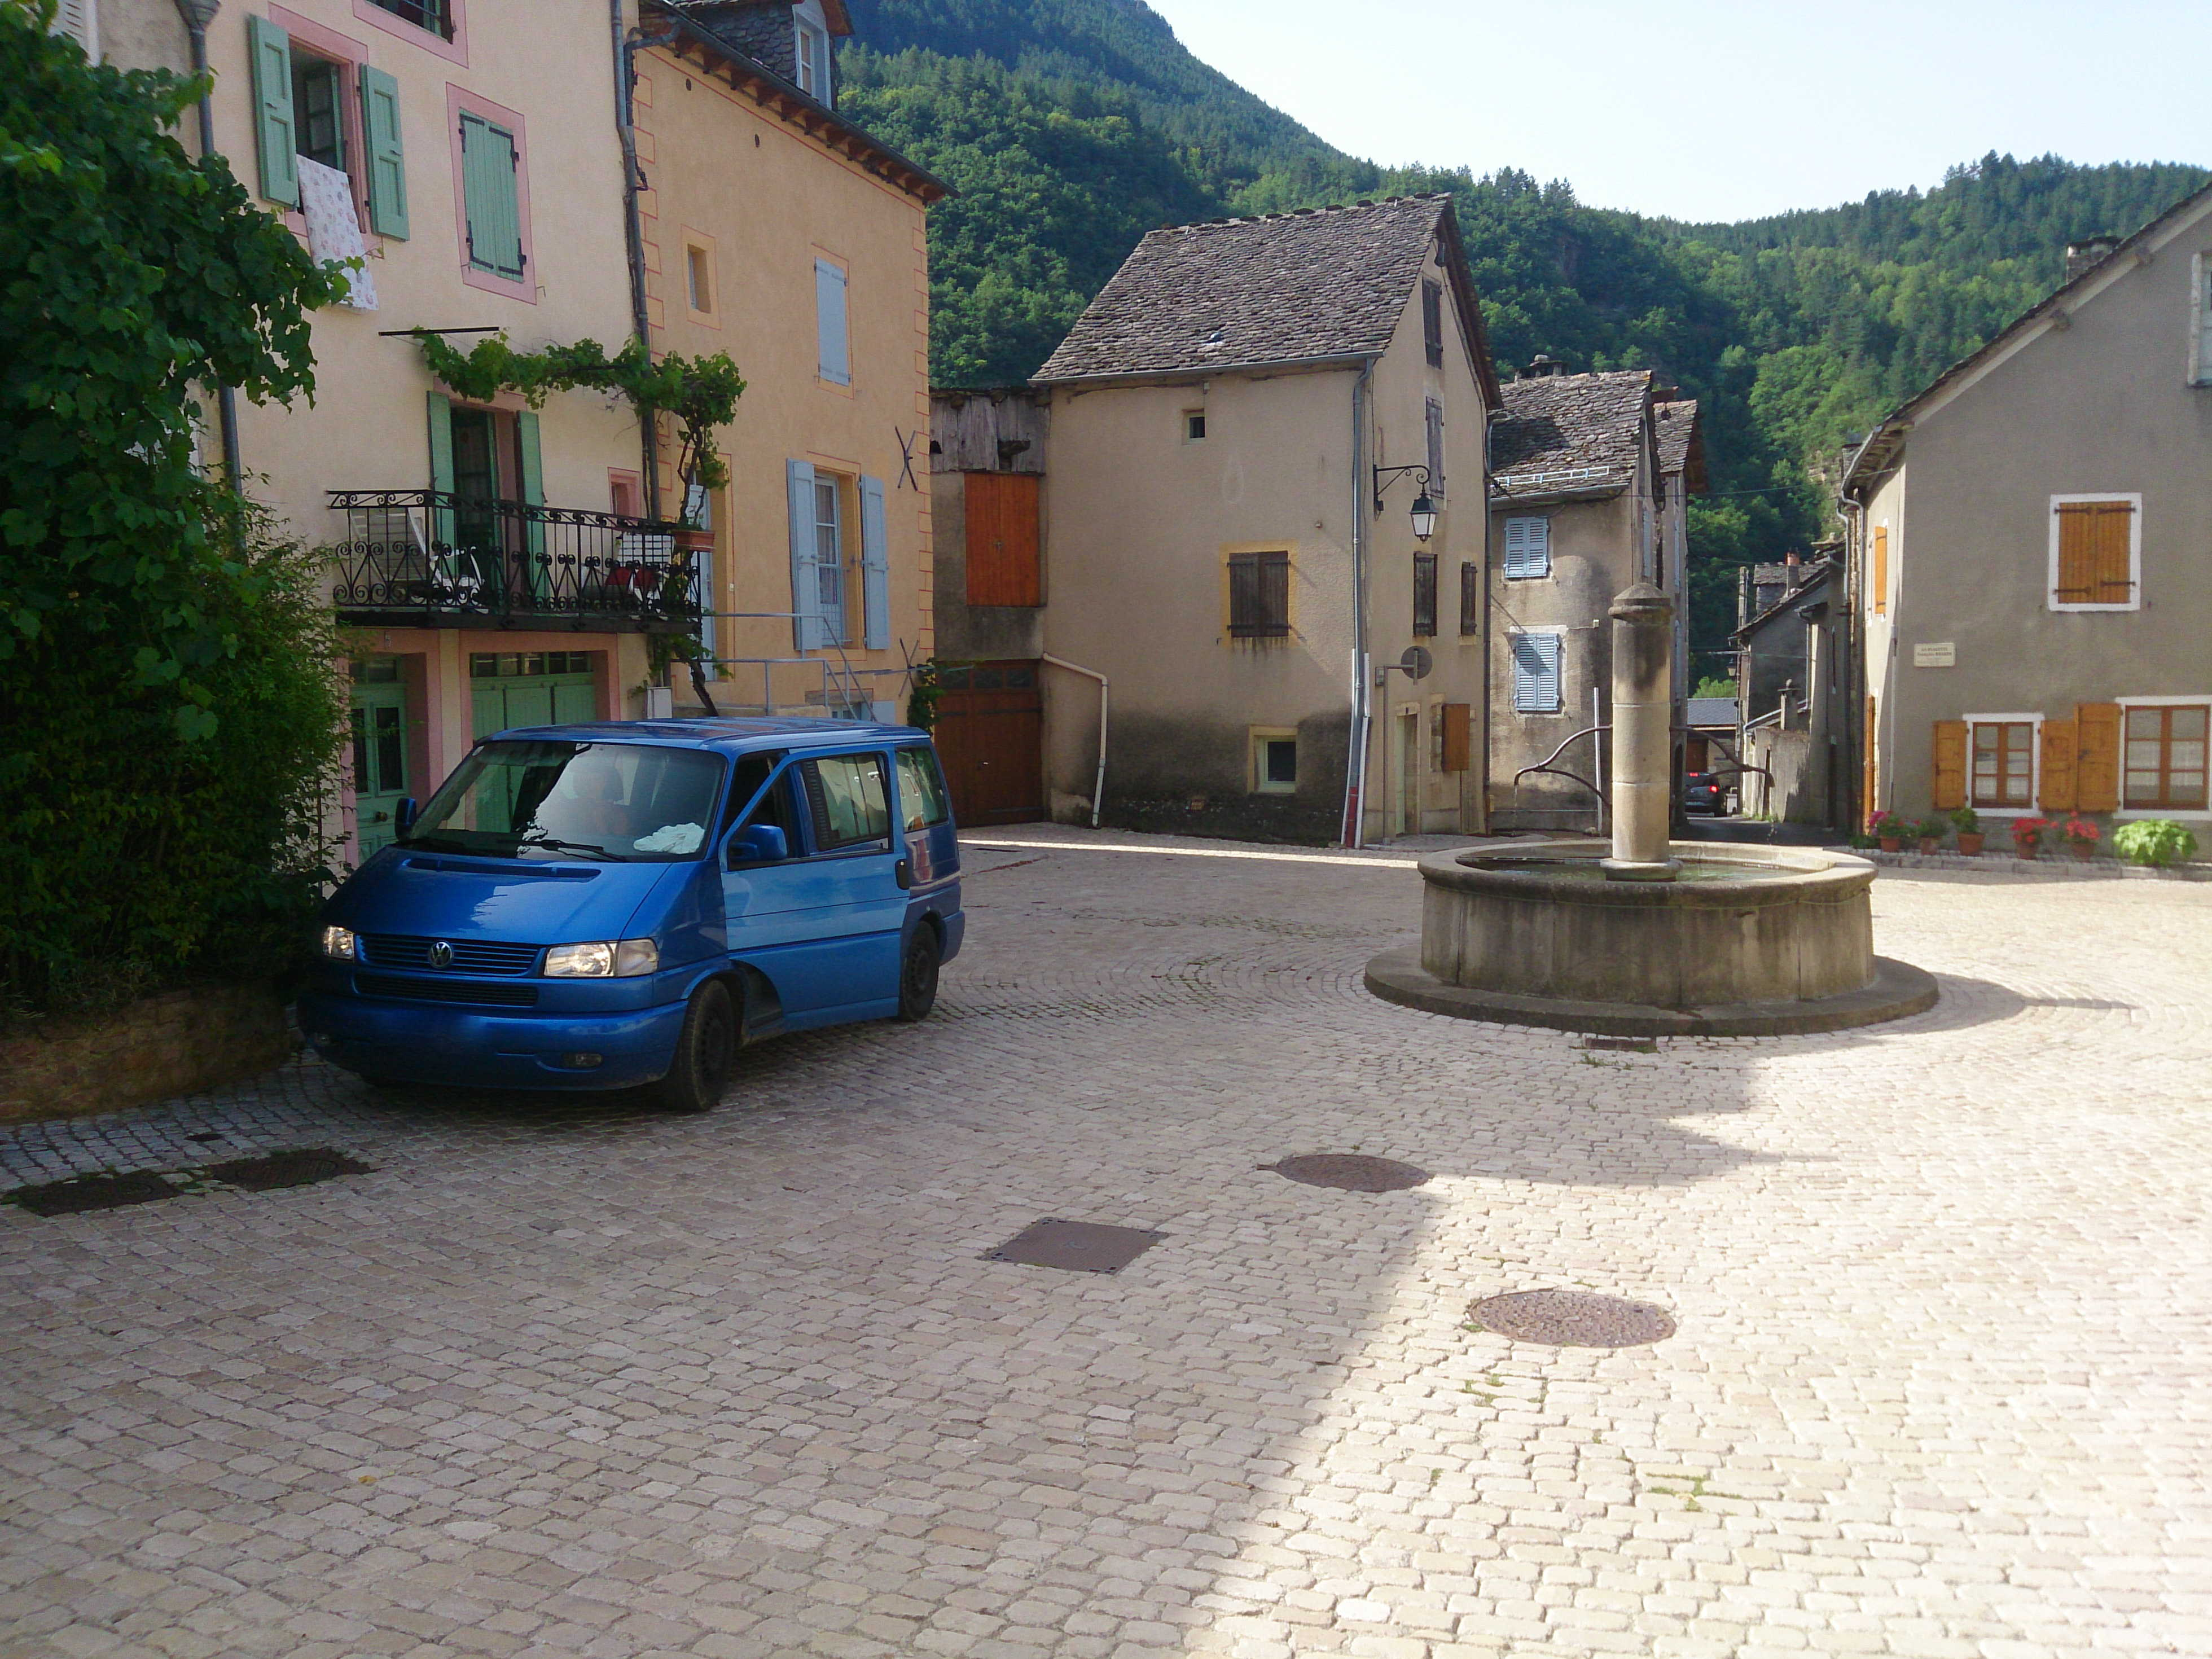 road trip to the provence